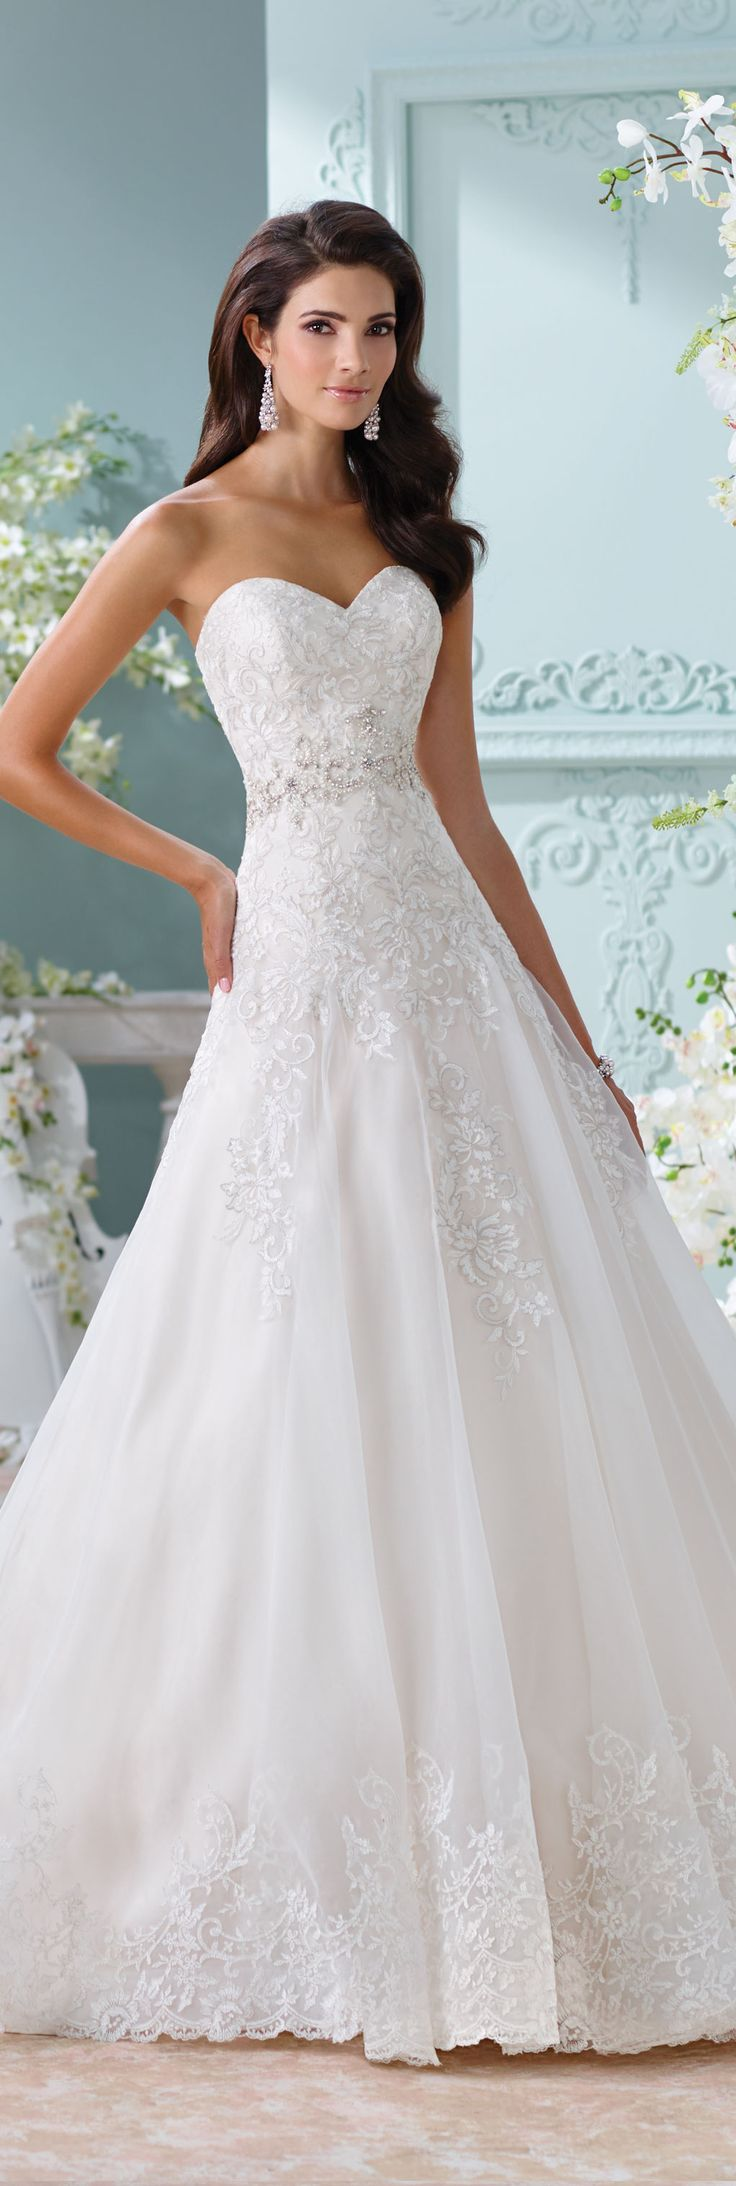 Best 25  Strapless wedding gowns ideas on Pinterest | Wedding ...